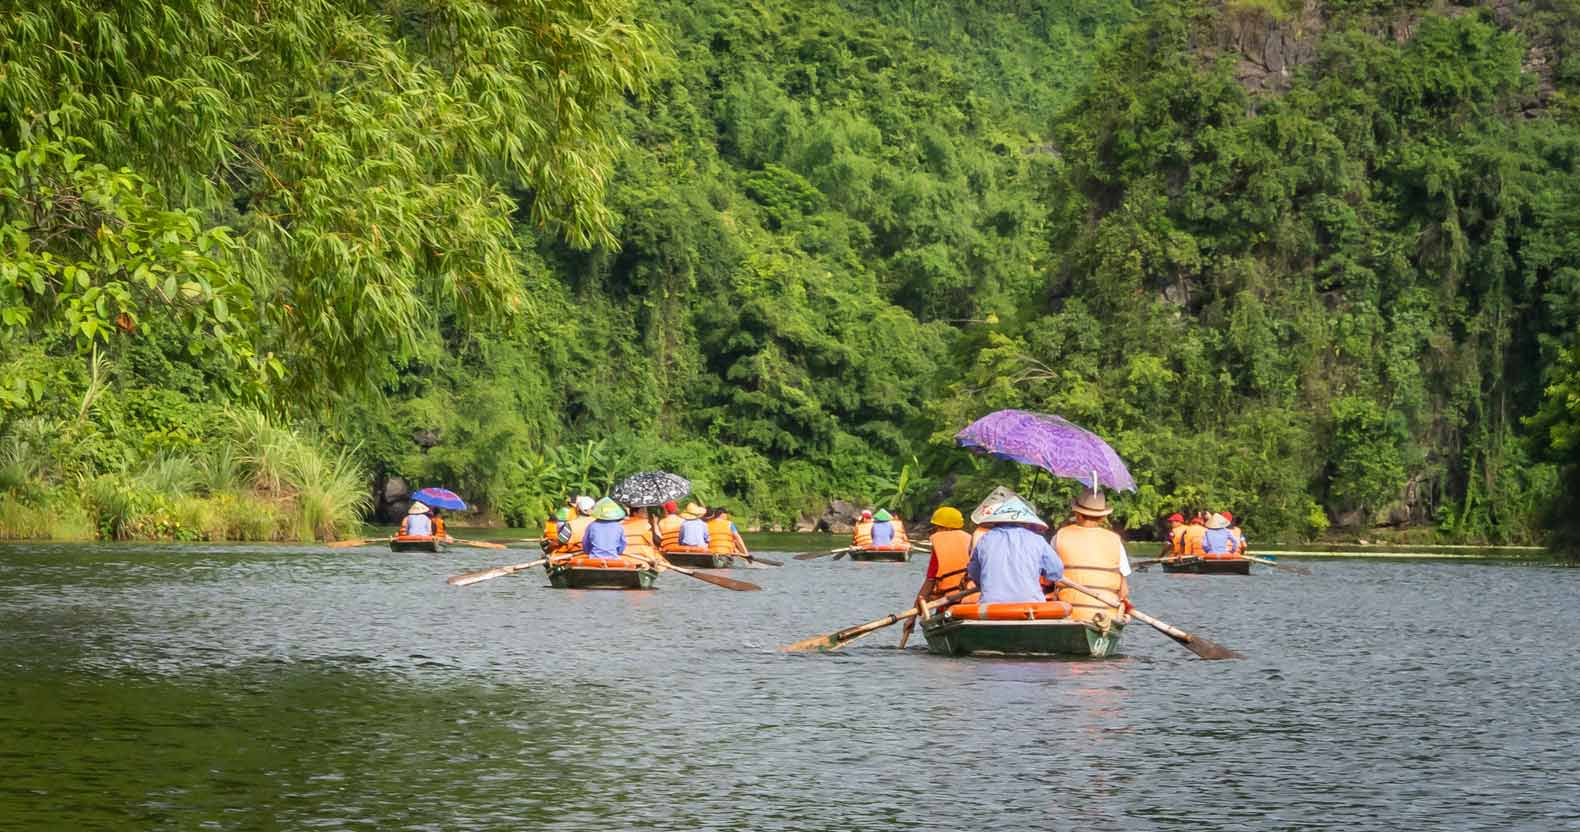 Trang An or Tam Coc: which Ninh Binh boat tour is best?